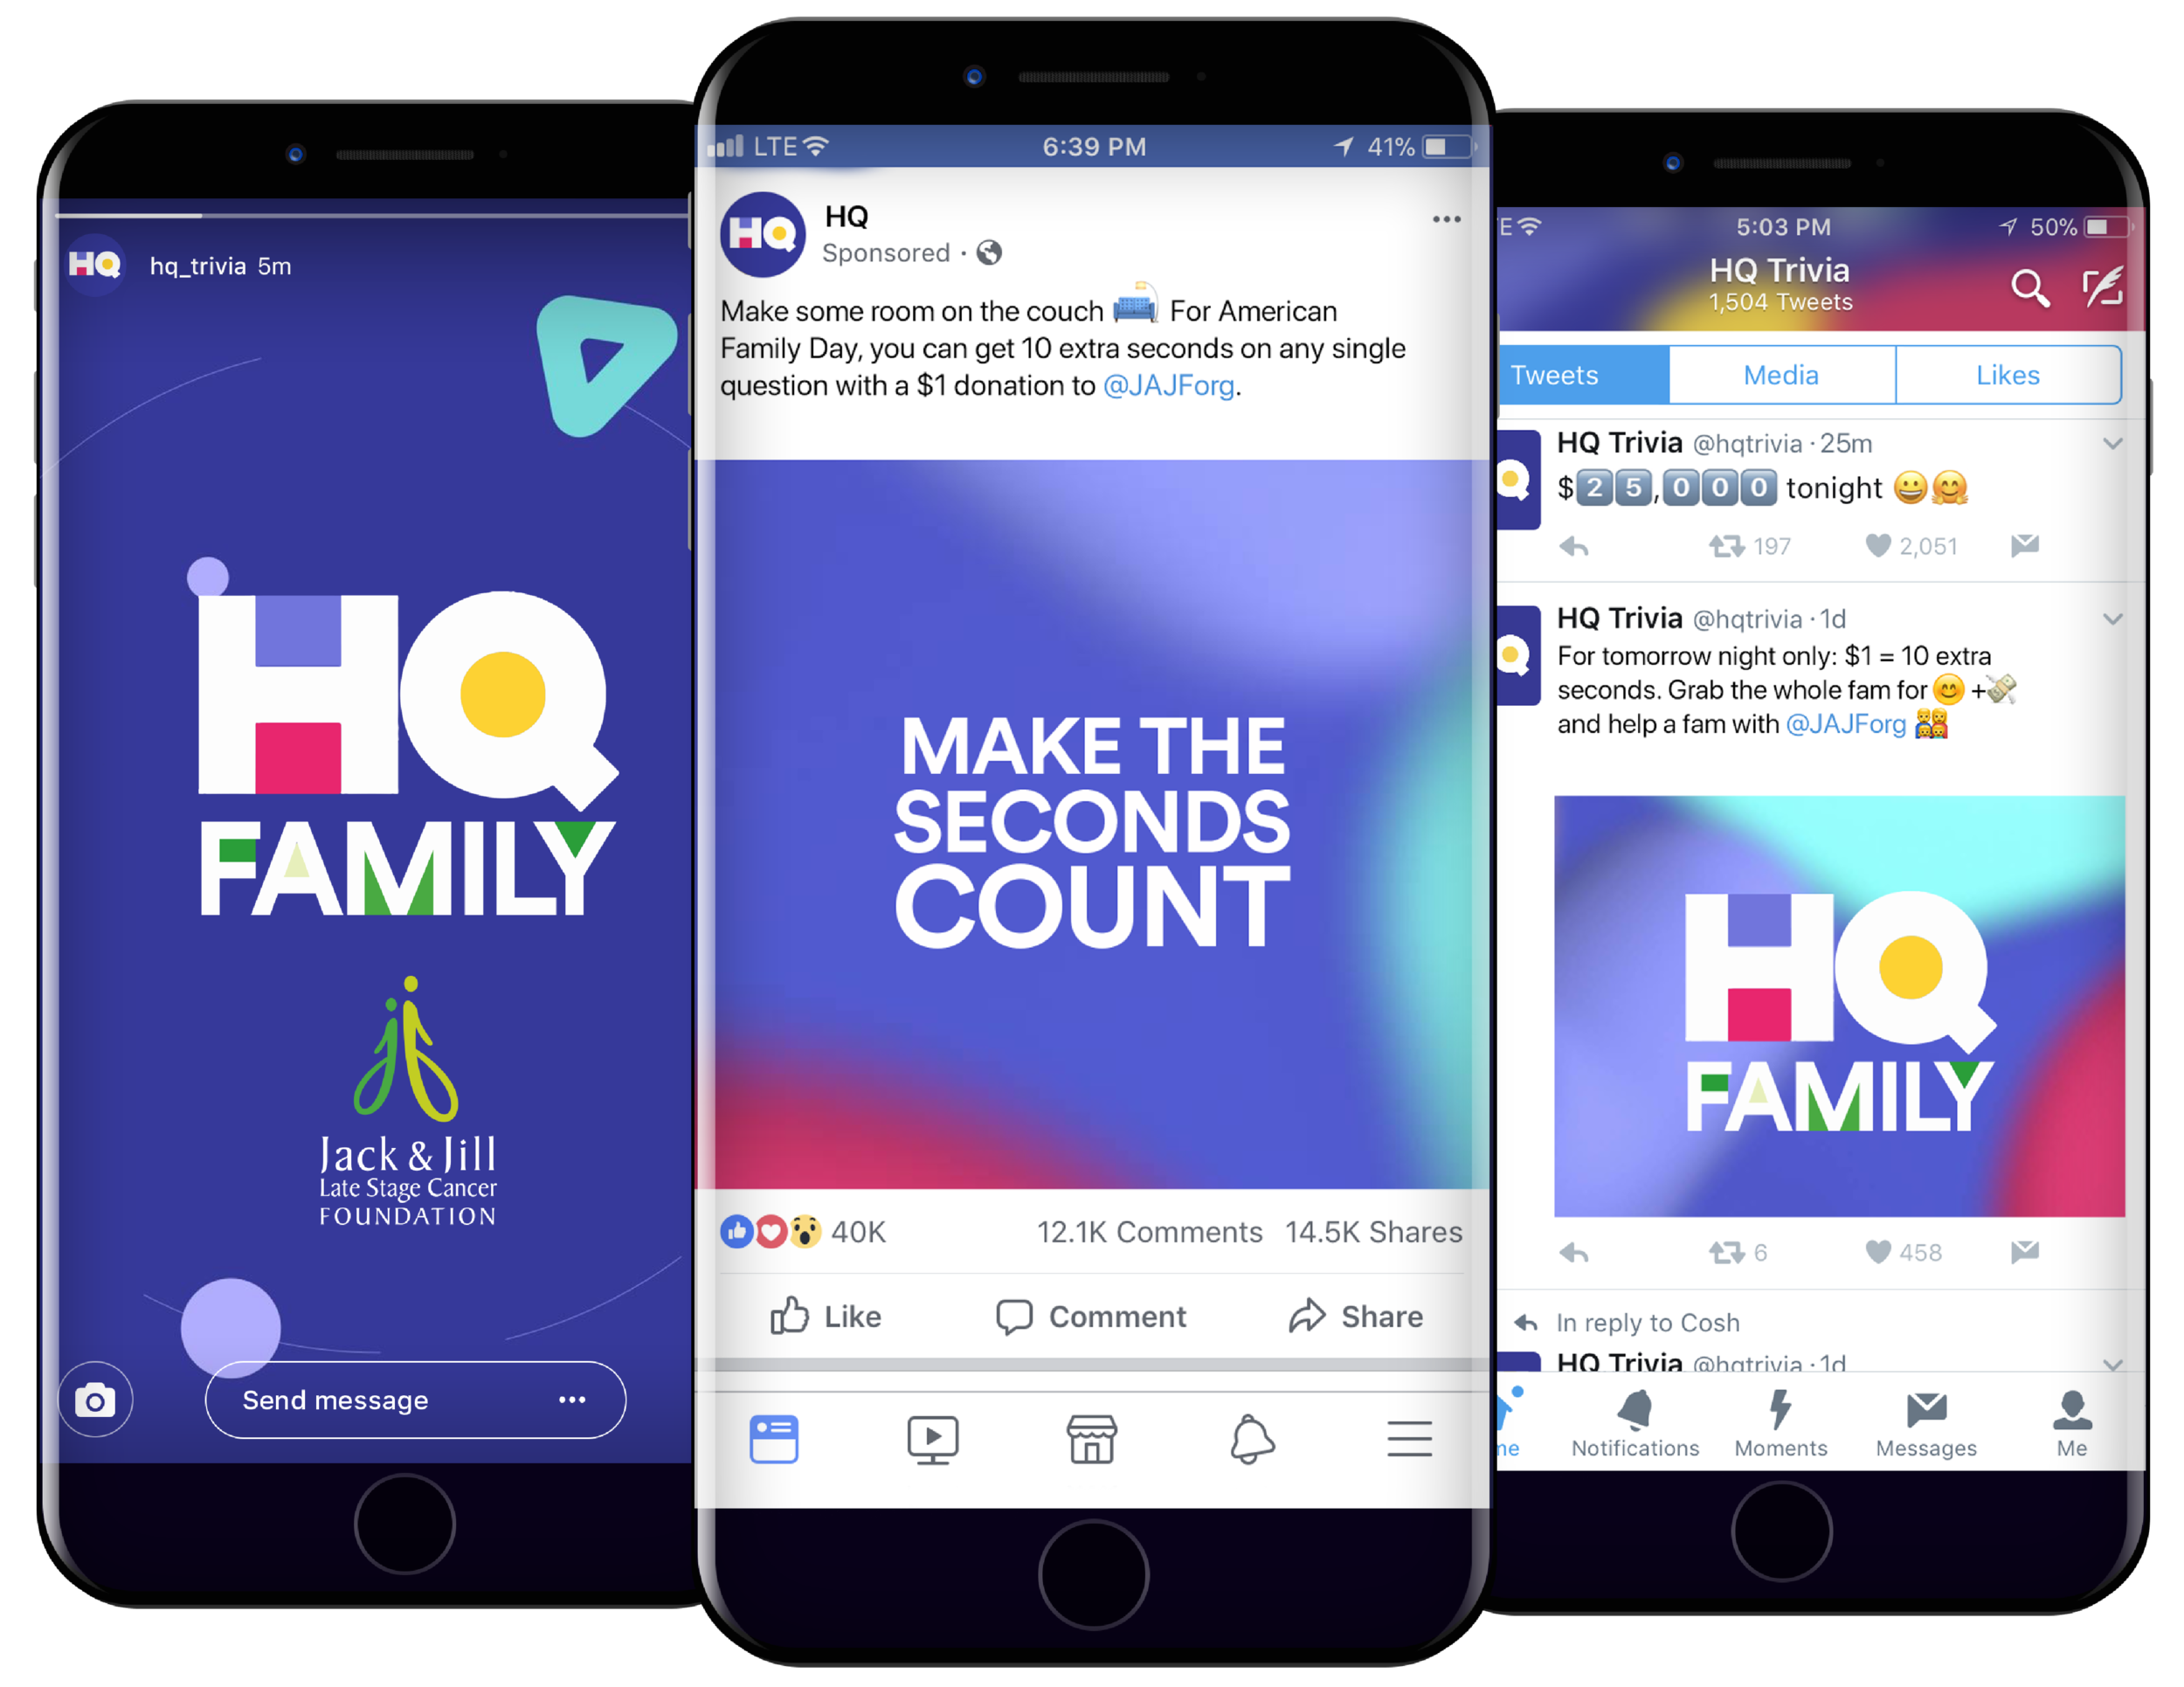 Social Buildup - The day before American Family Day, we'll rollout tweets, ads on Instagram Stories, and sponsored Facebook posts to our hyper-connected audience.